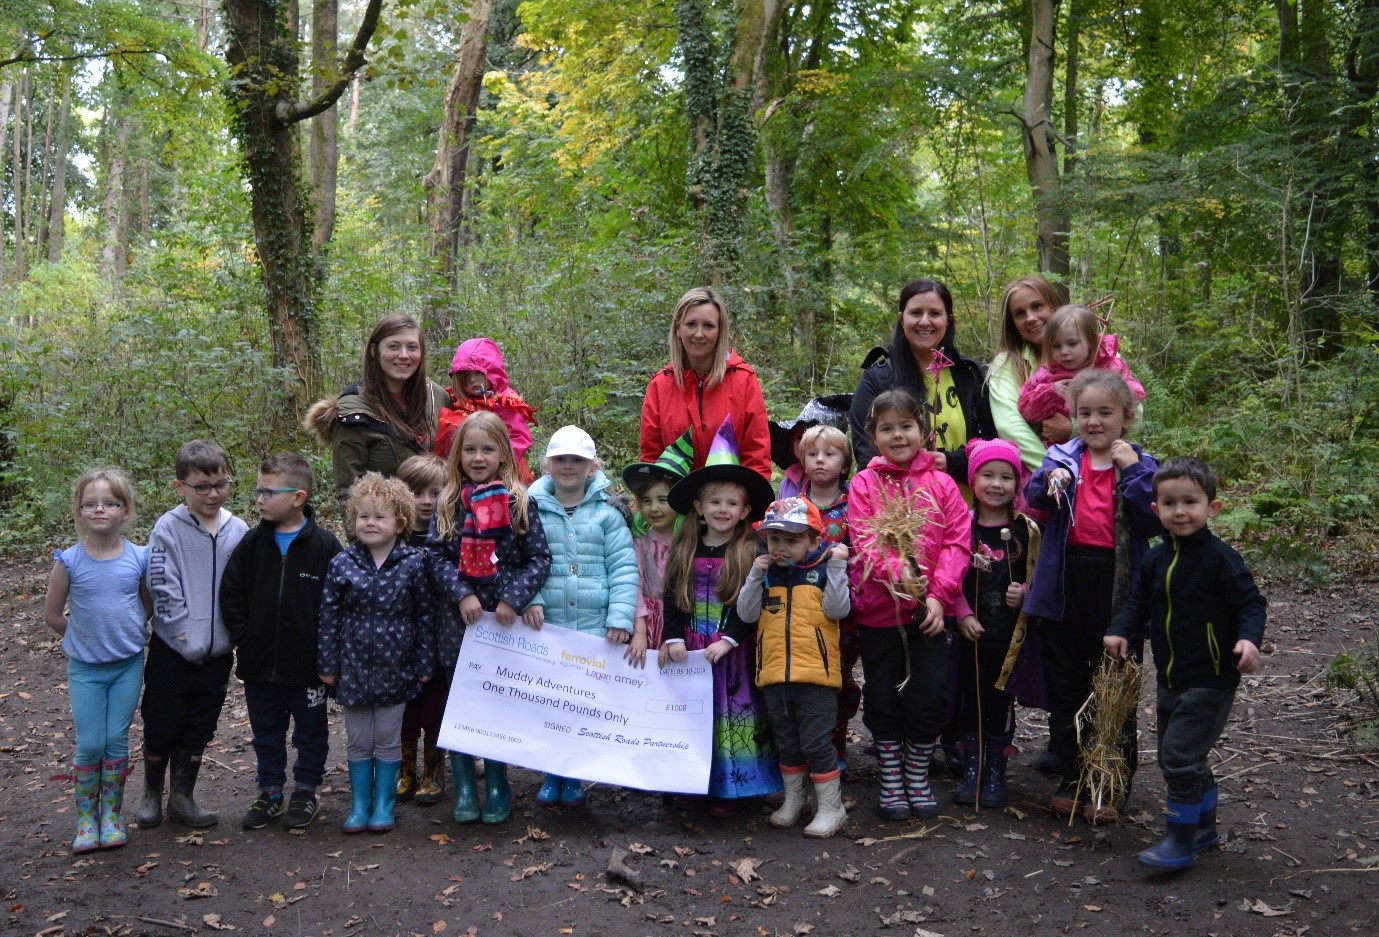 Scottish Roads Partnership presented Muddy Adventures with a bumper cheque for £1,000 from its Good Neighbour Fund